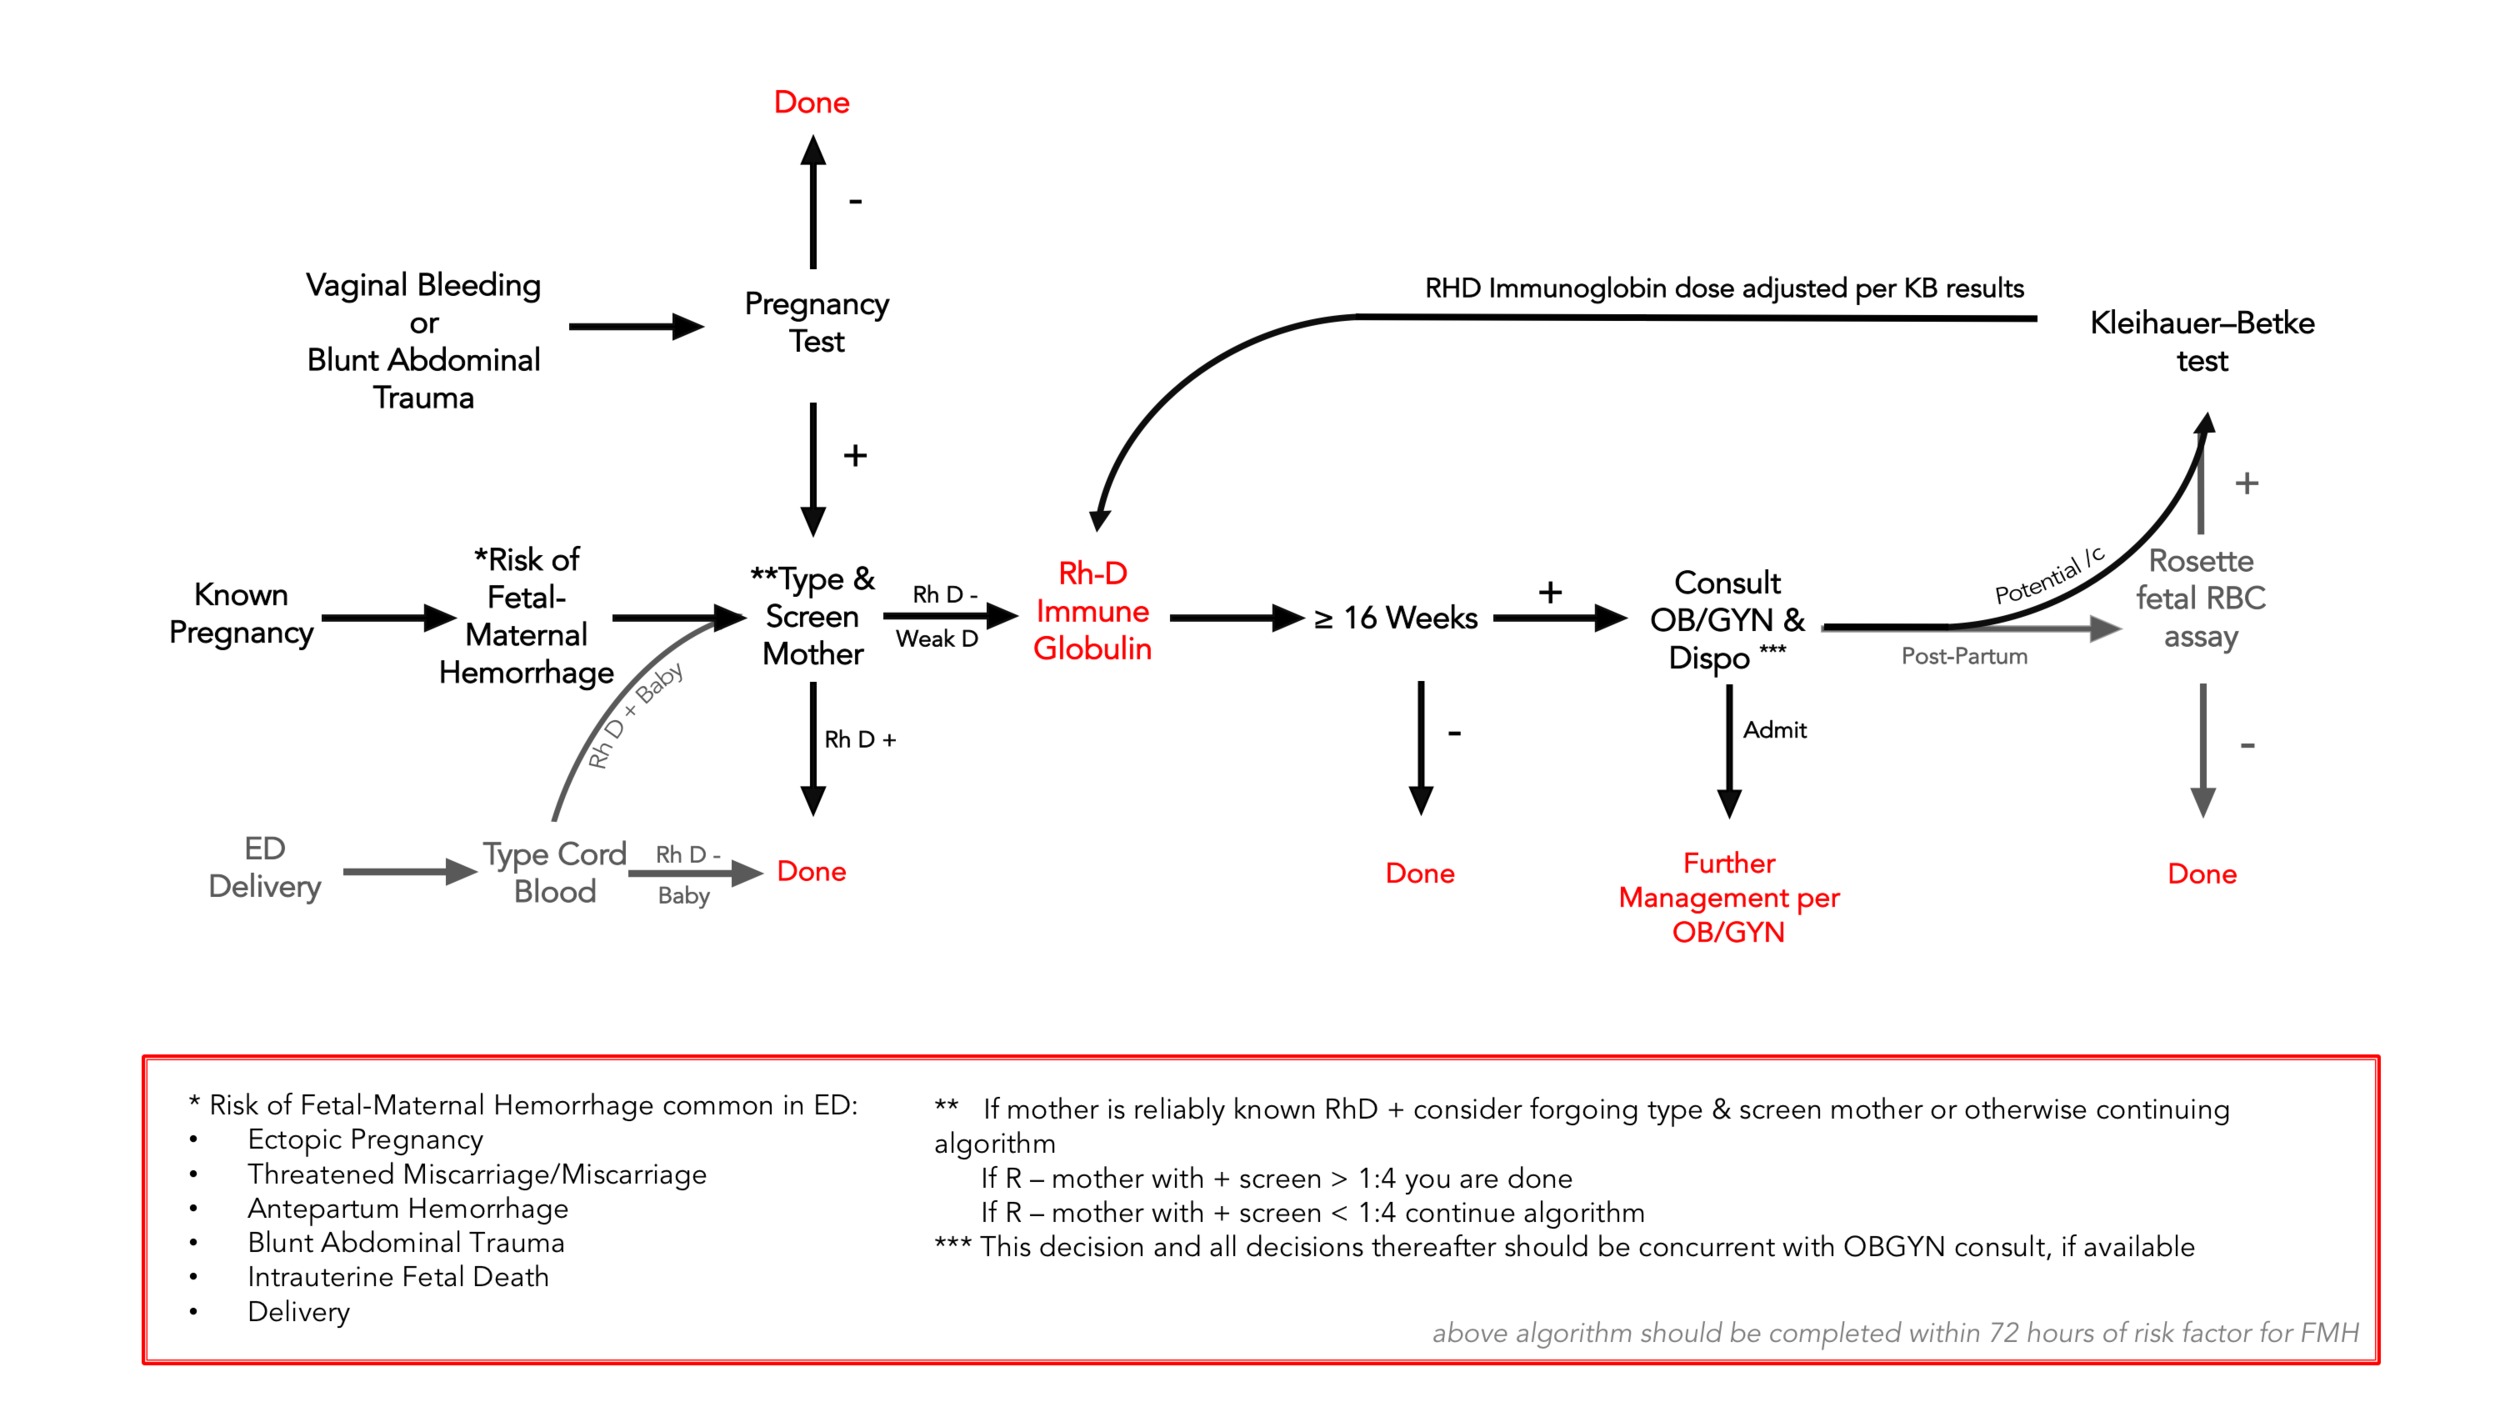 Approach to the undifferentiated female patient ED patient to limit risk of alloimmunization by maternal-fetal blood exposure and appropriate Rhogam use. Figure by Adam Gottula, MD (CC by 4.0)